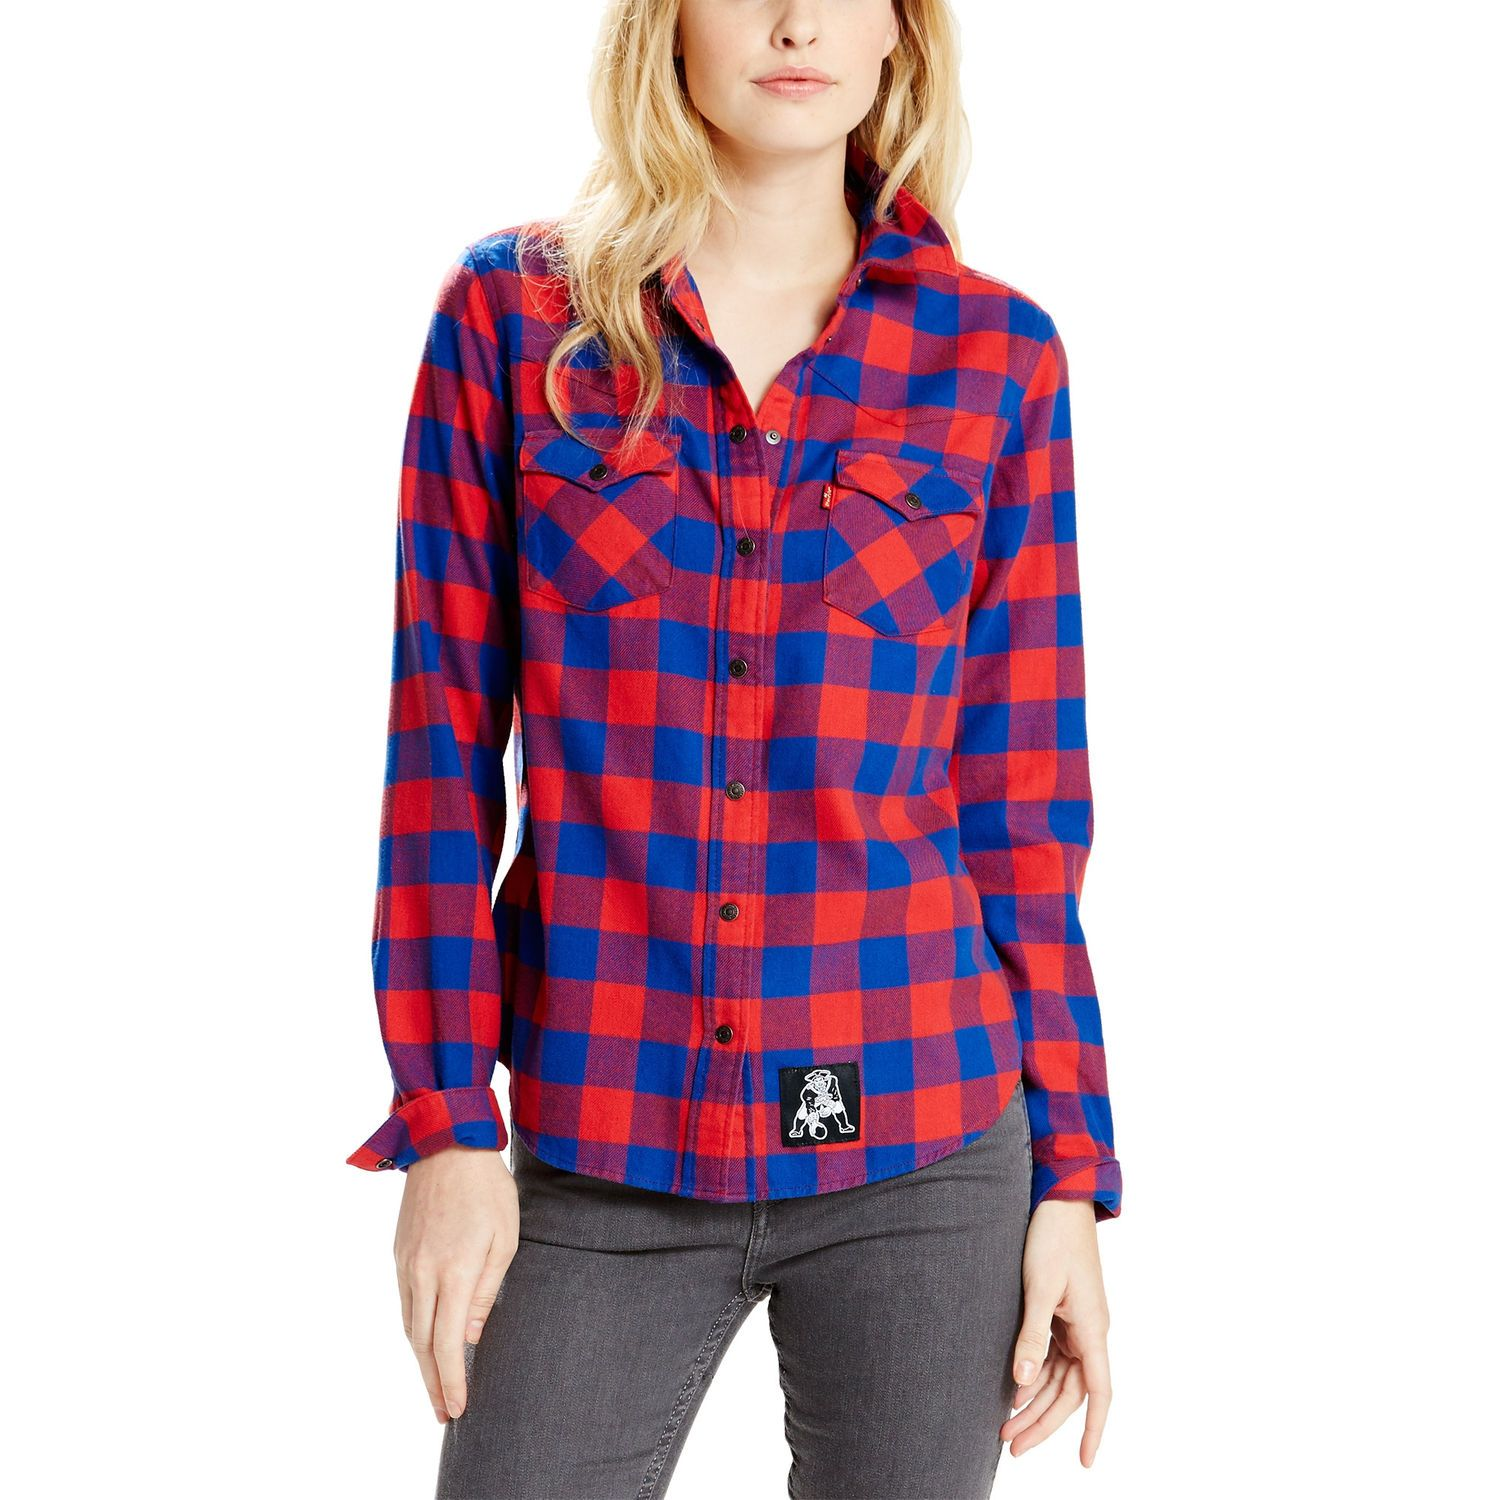 9cfa2801 Levi's New England Patriots Women's Navy Barstow Western Long Sleeve  Button-Up Shirt